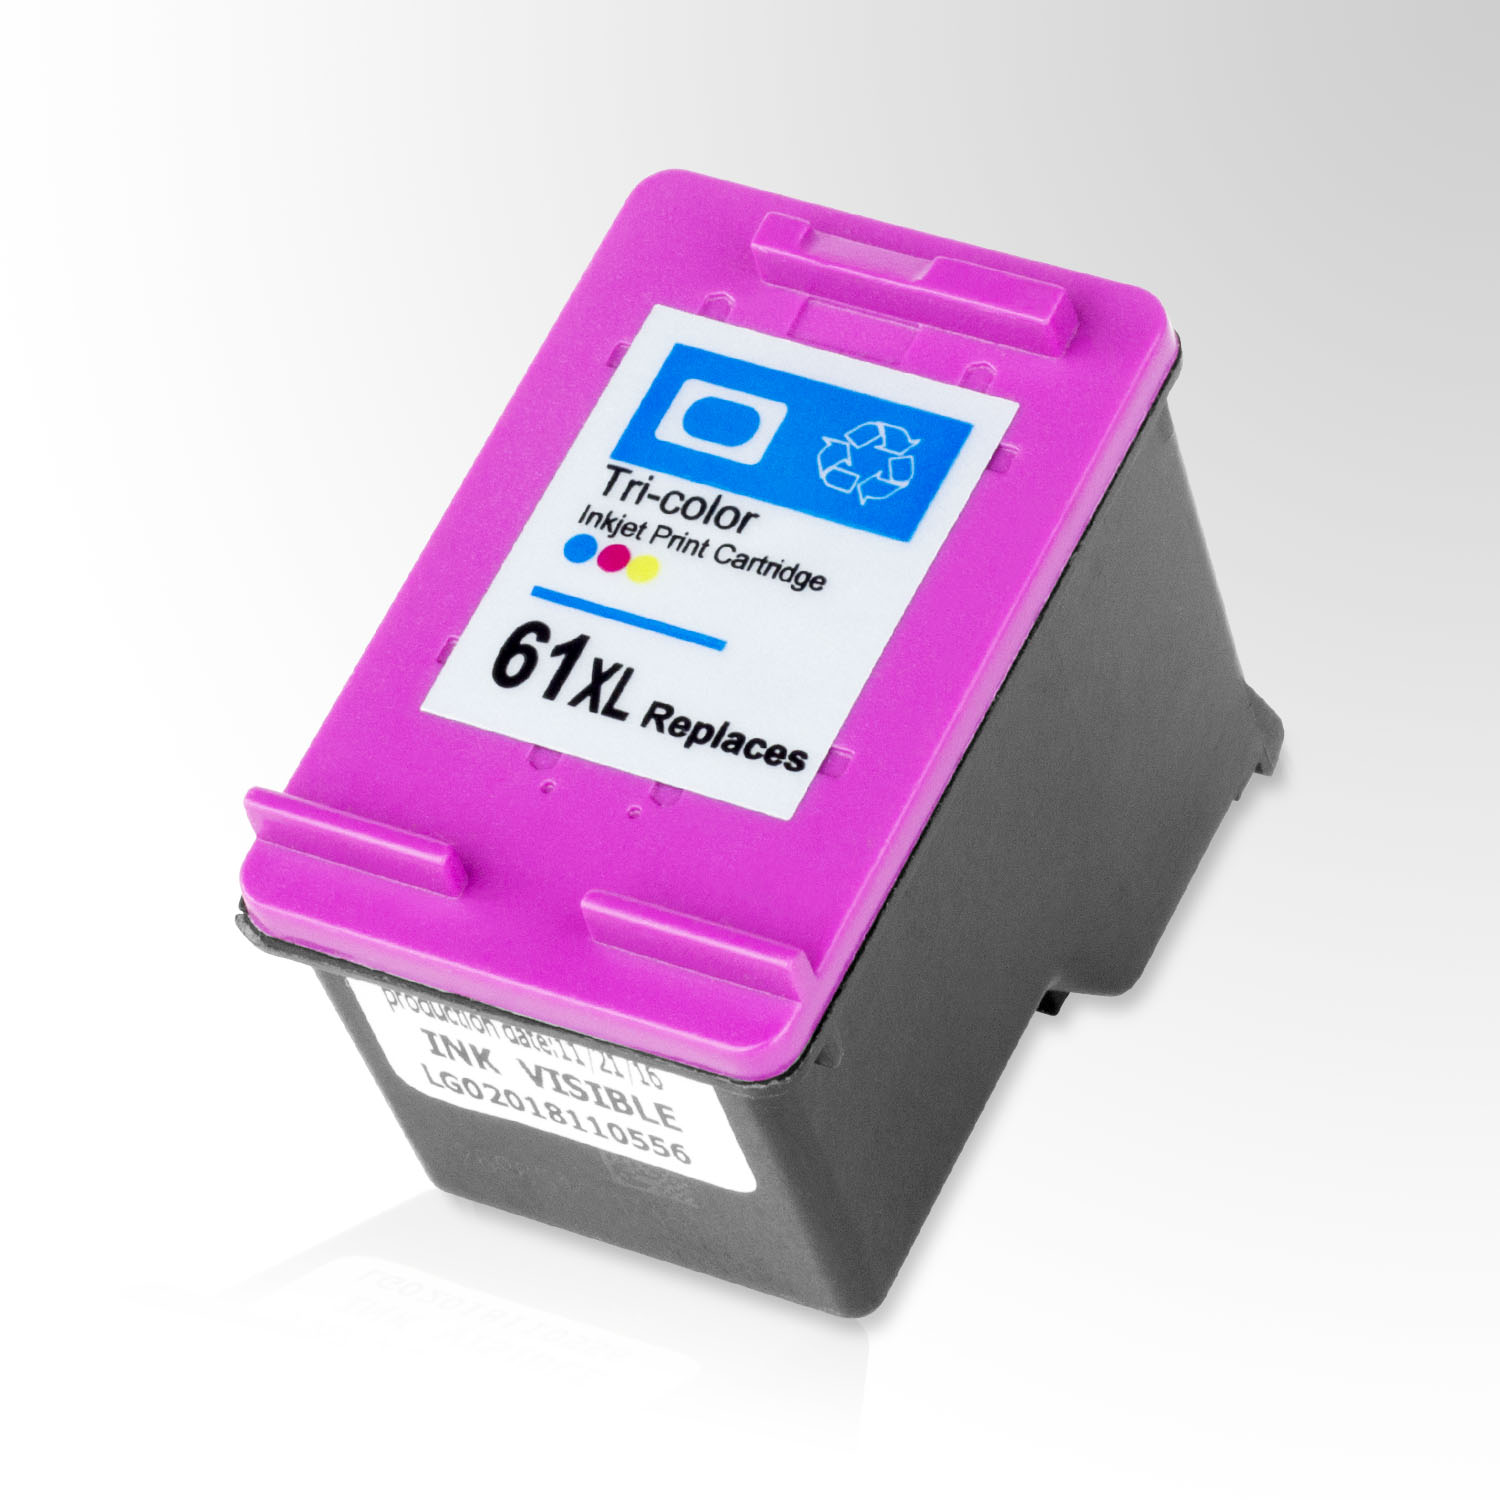 CH564HE / HP 61XL ALL-INK-TONER Remanufactured HP Printer Compatible Color  High Yield Replacement Cartridge w/ Auto Ink Level Reset - Tricolor 1PK